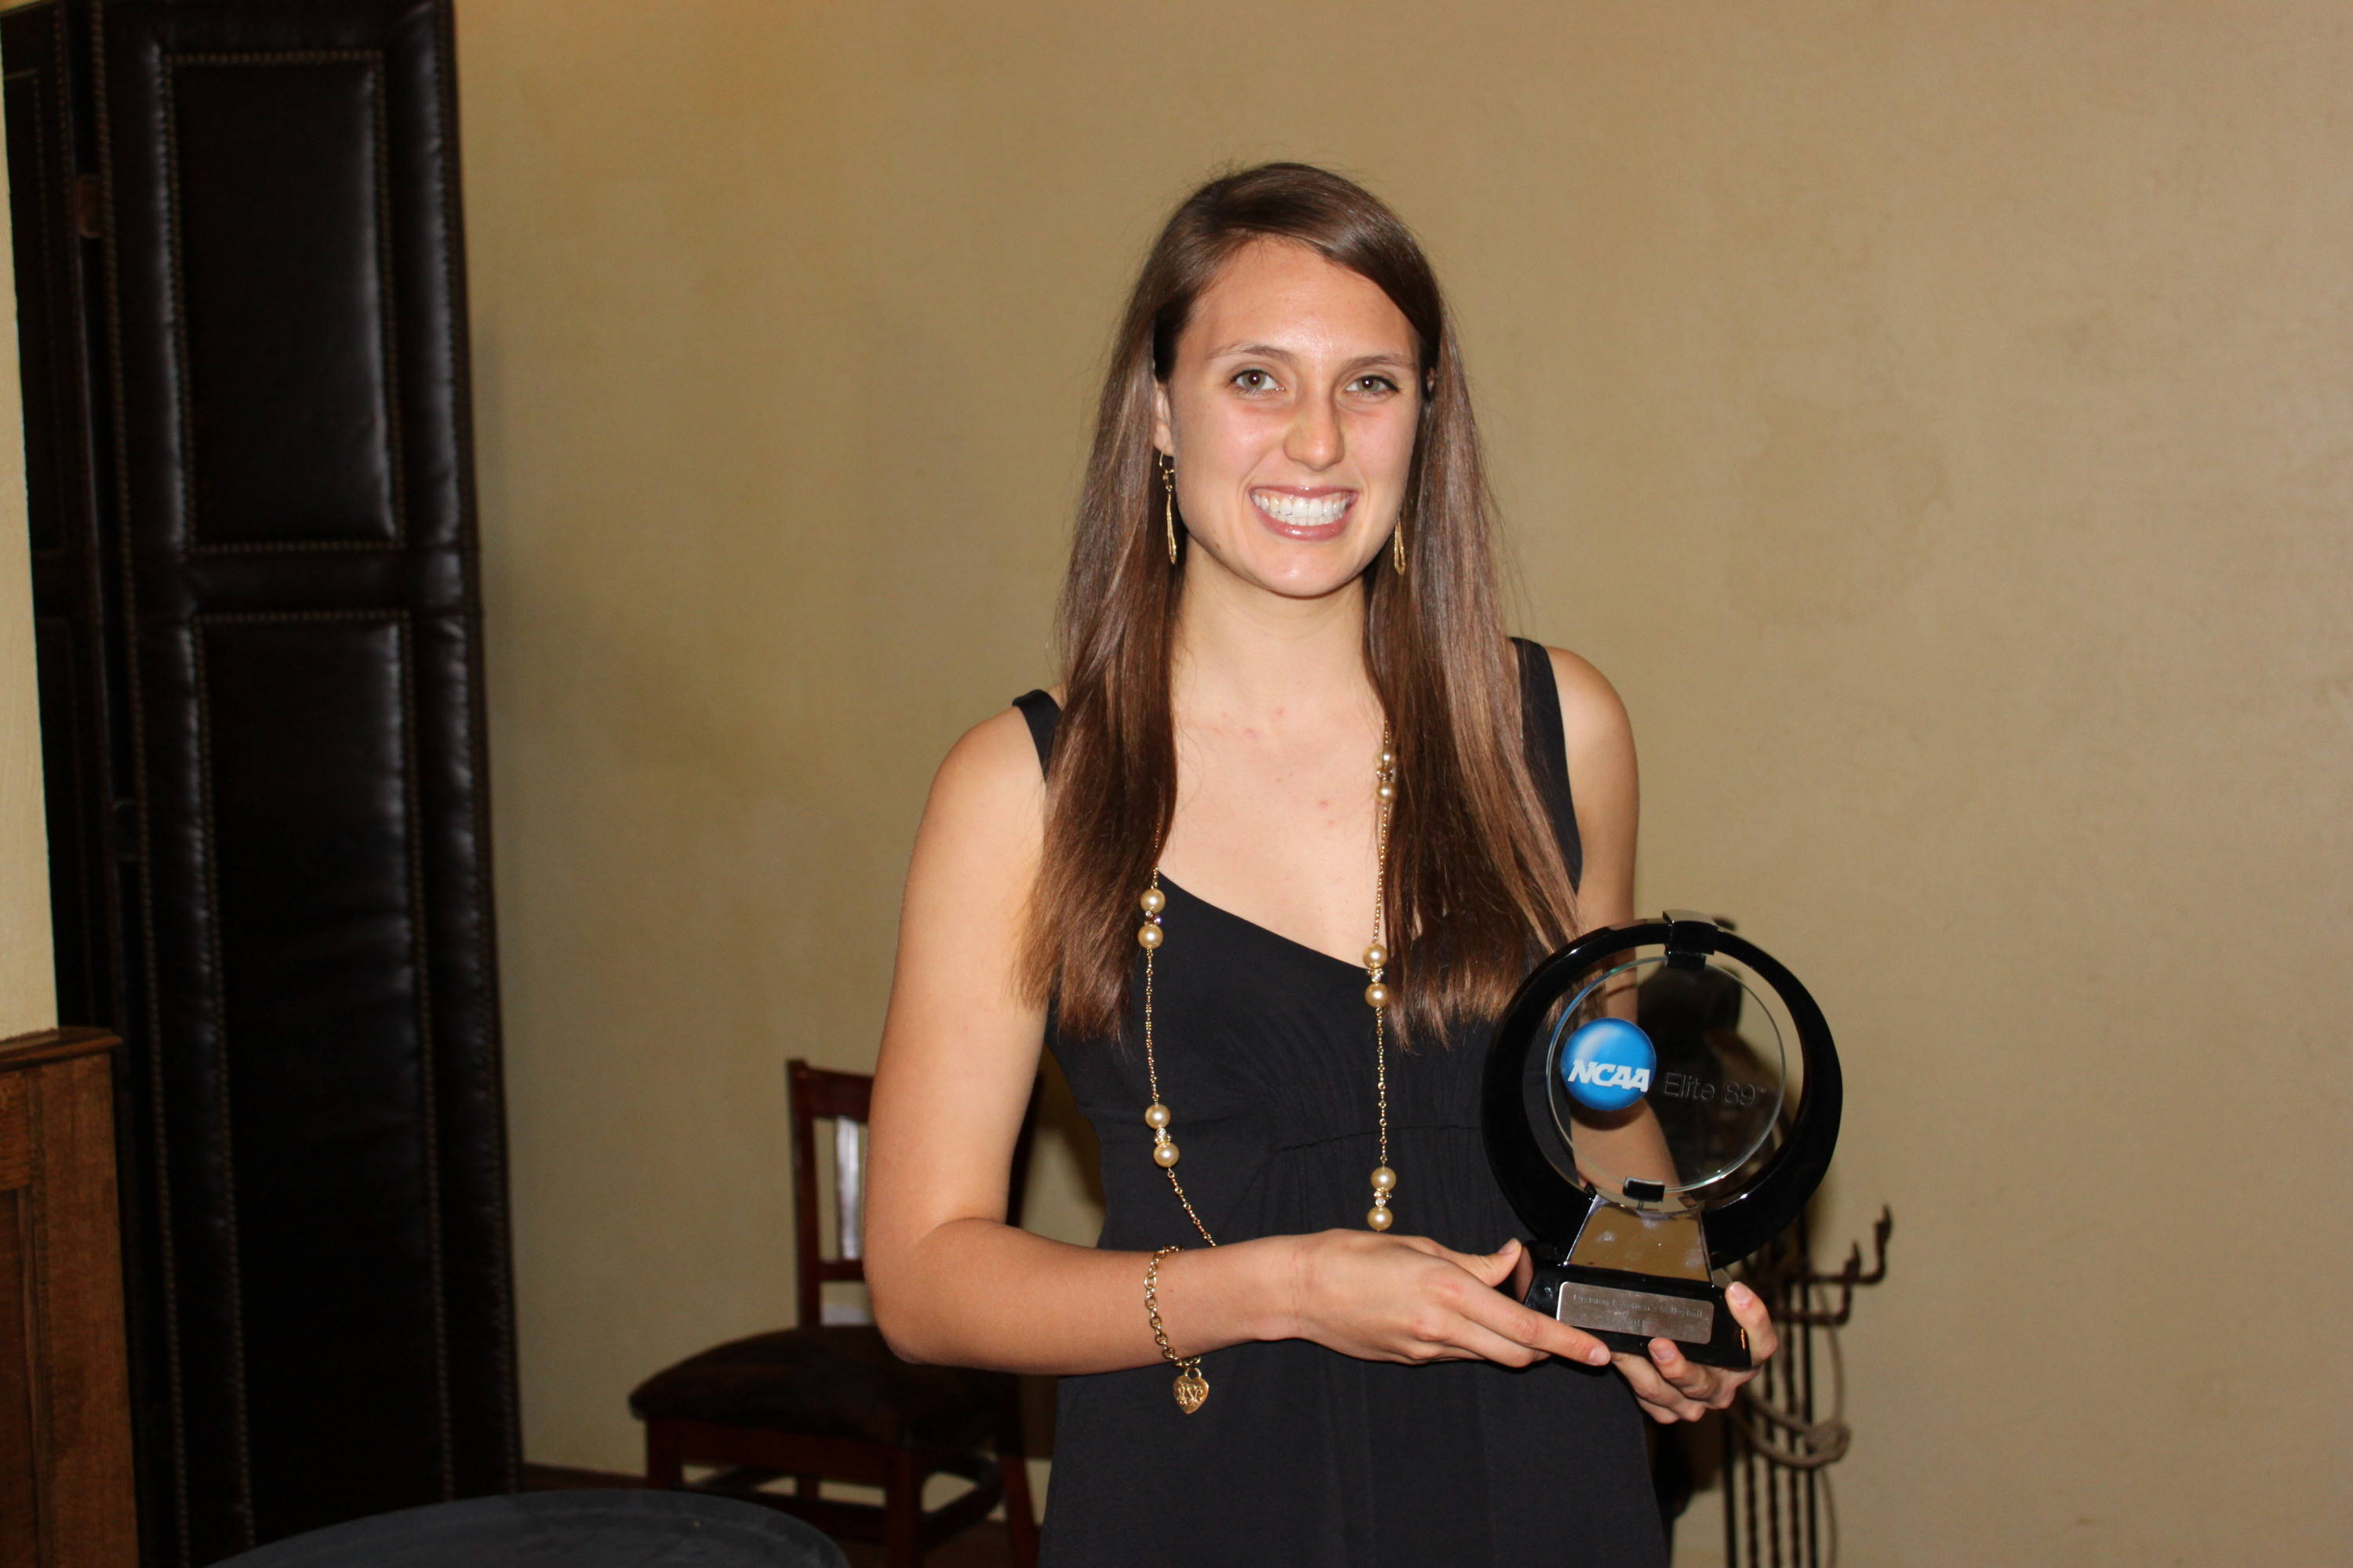 Amanda Saxton after winning the Elite 89 award.